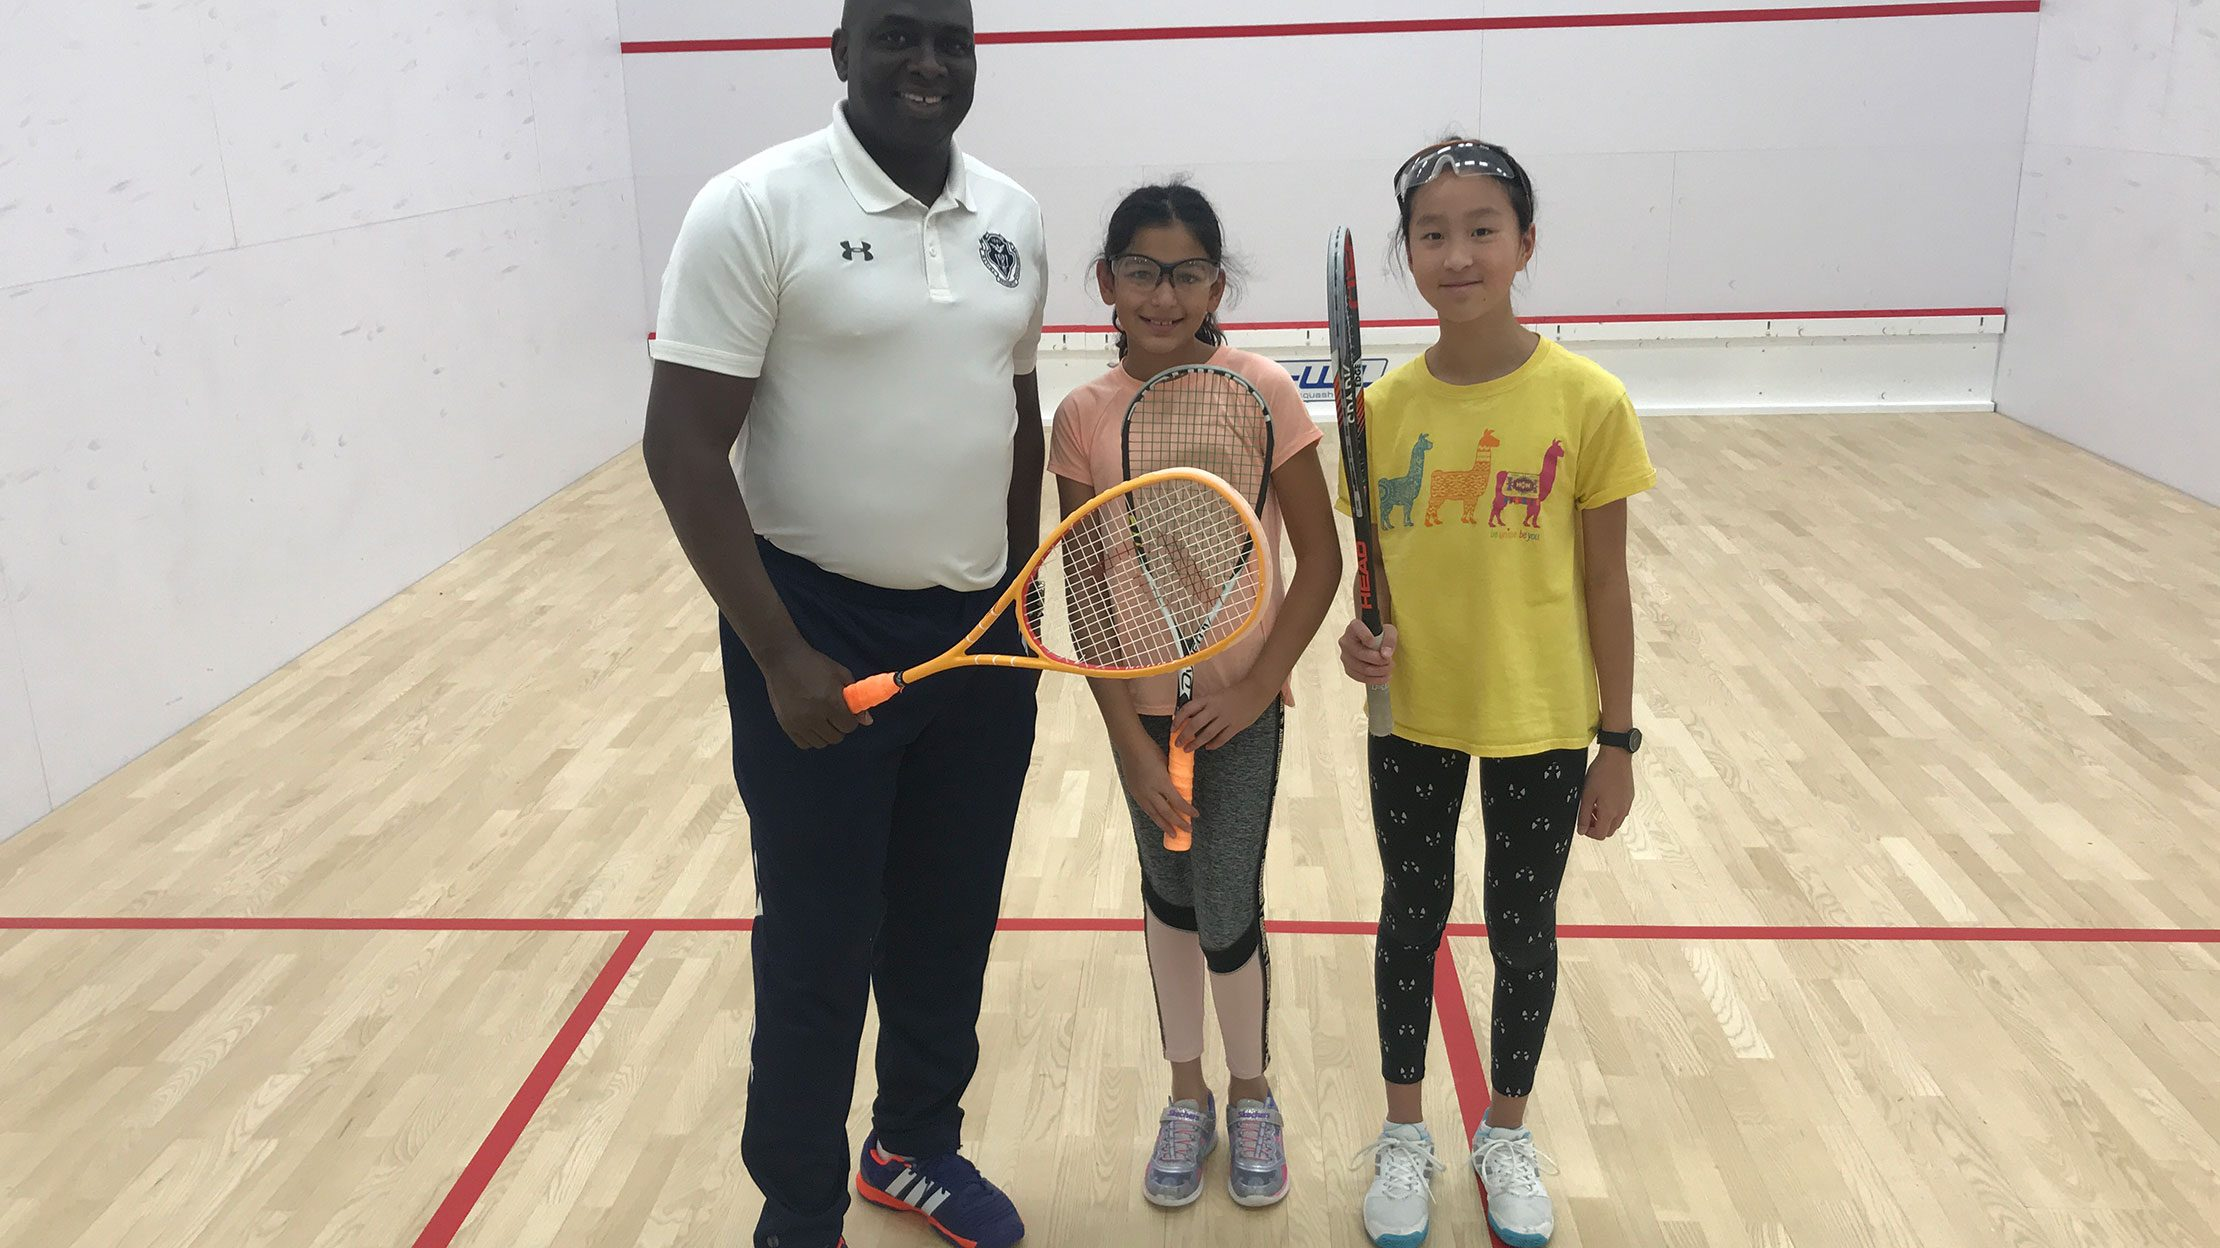 An instructor standing with two girls on a squash court.